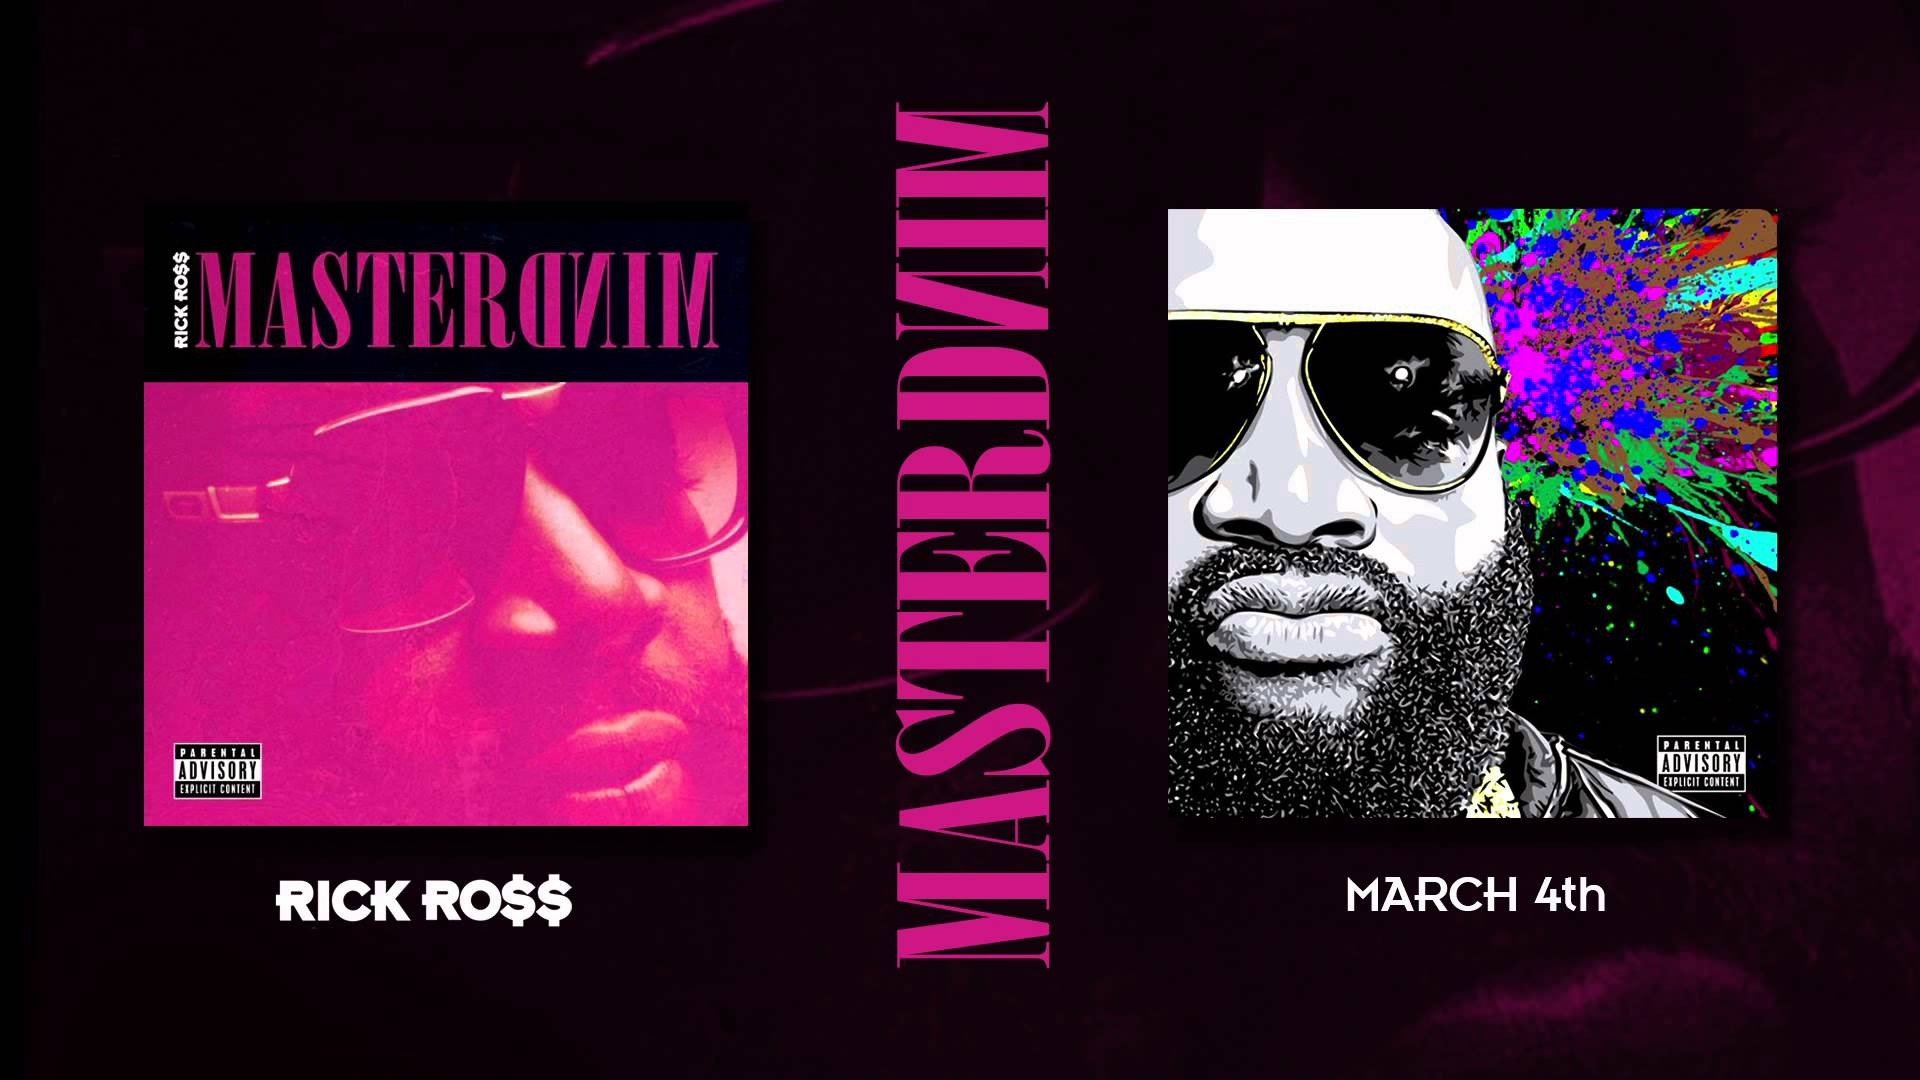 Rick Ross Mastermind Covers Rap Wallpapers 1920x1080